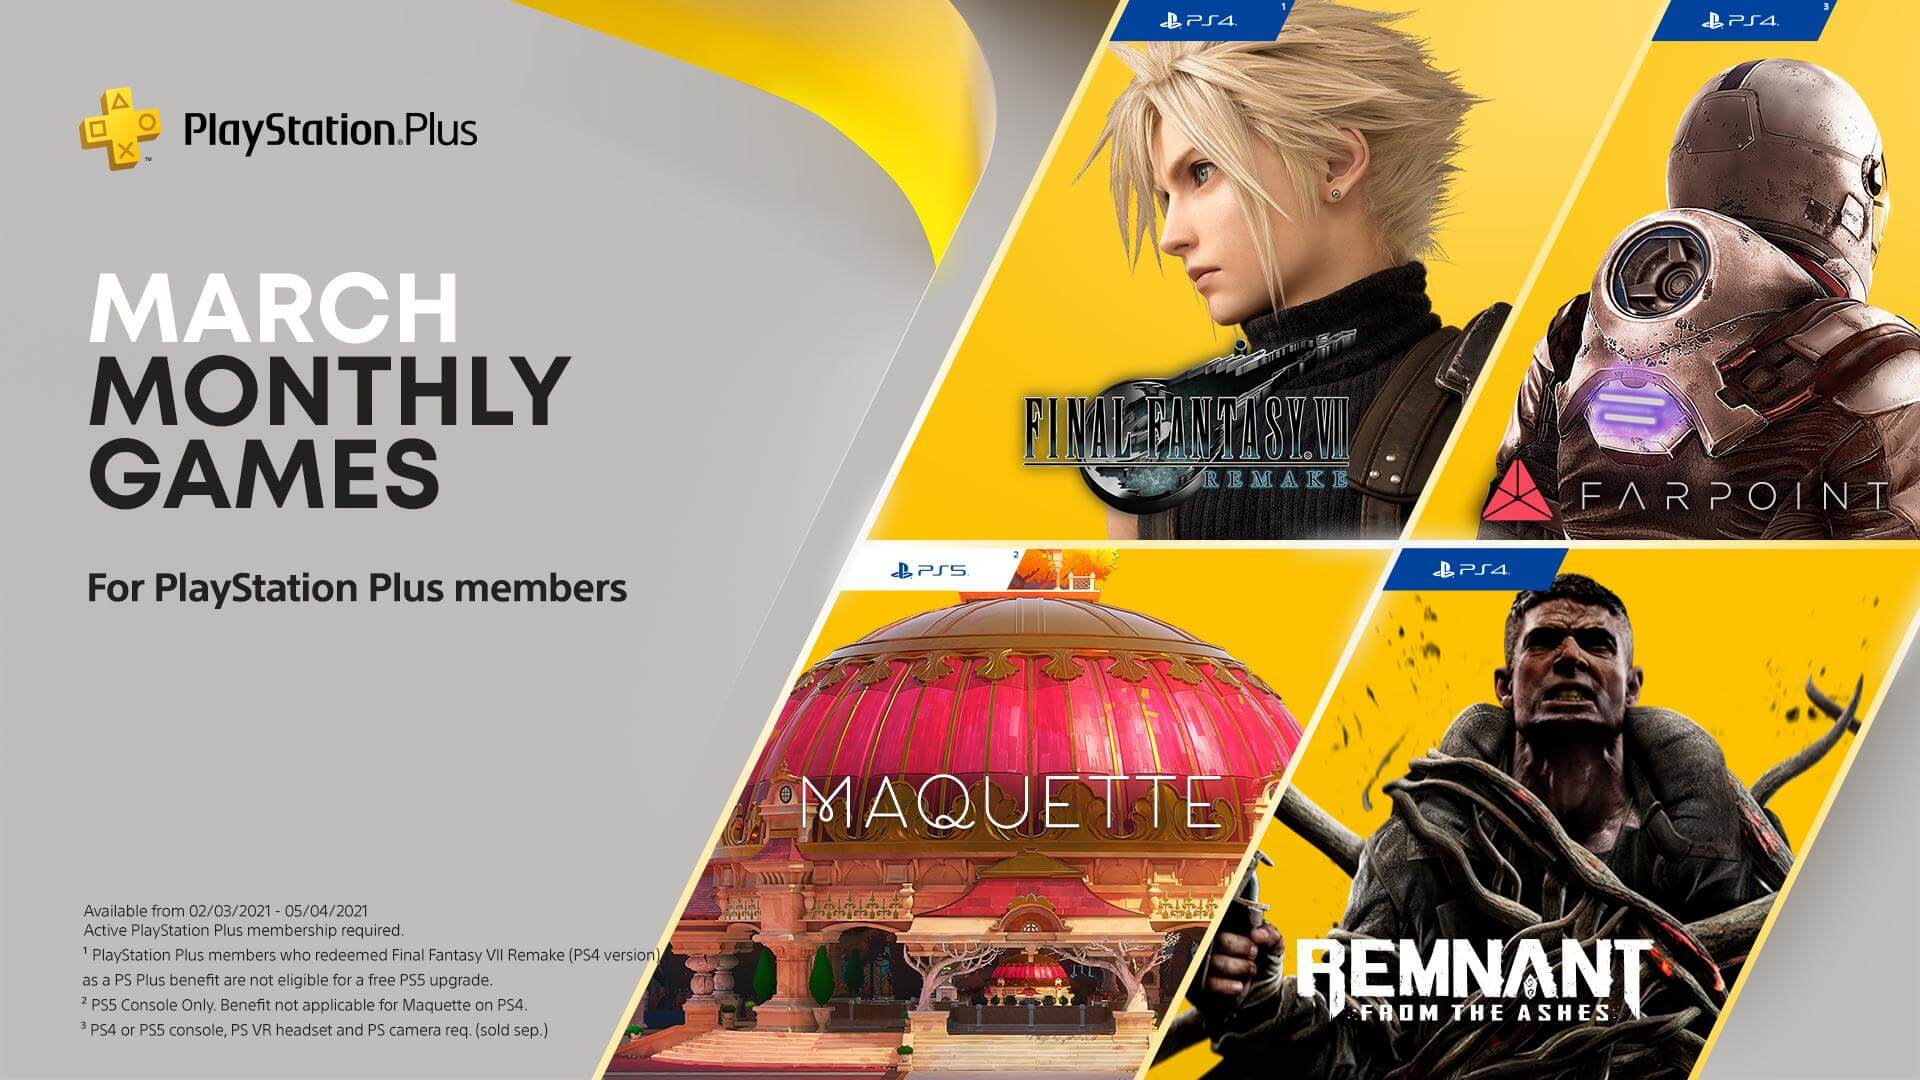 The advertisement for March's PS Plus free games, including FF7 Remake and Maquette.